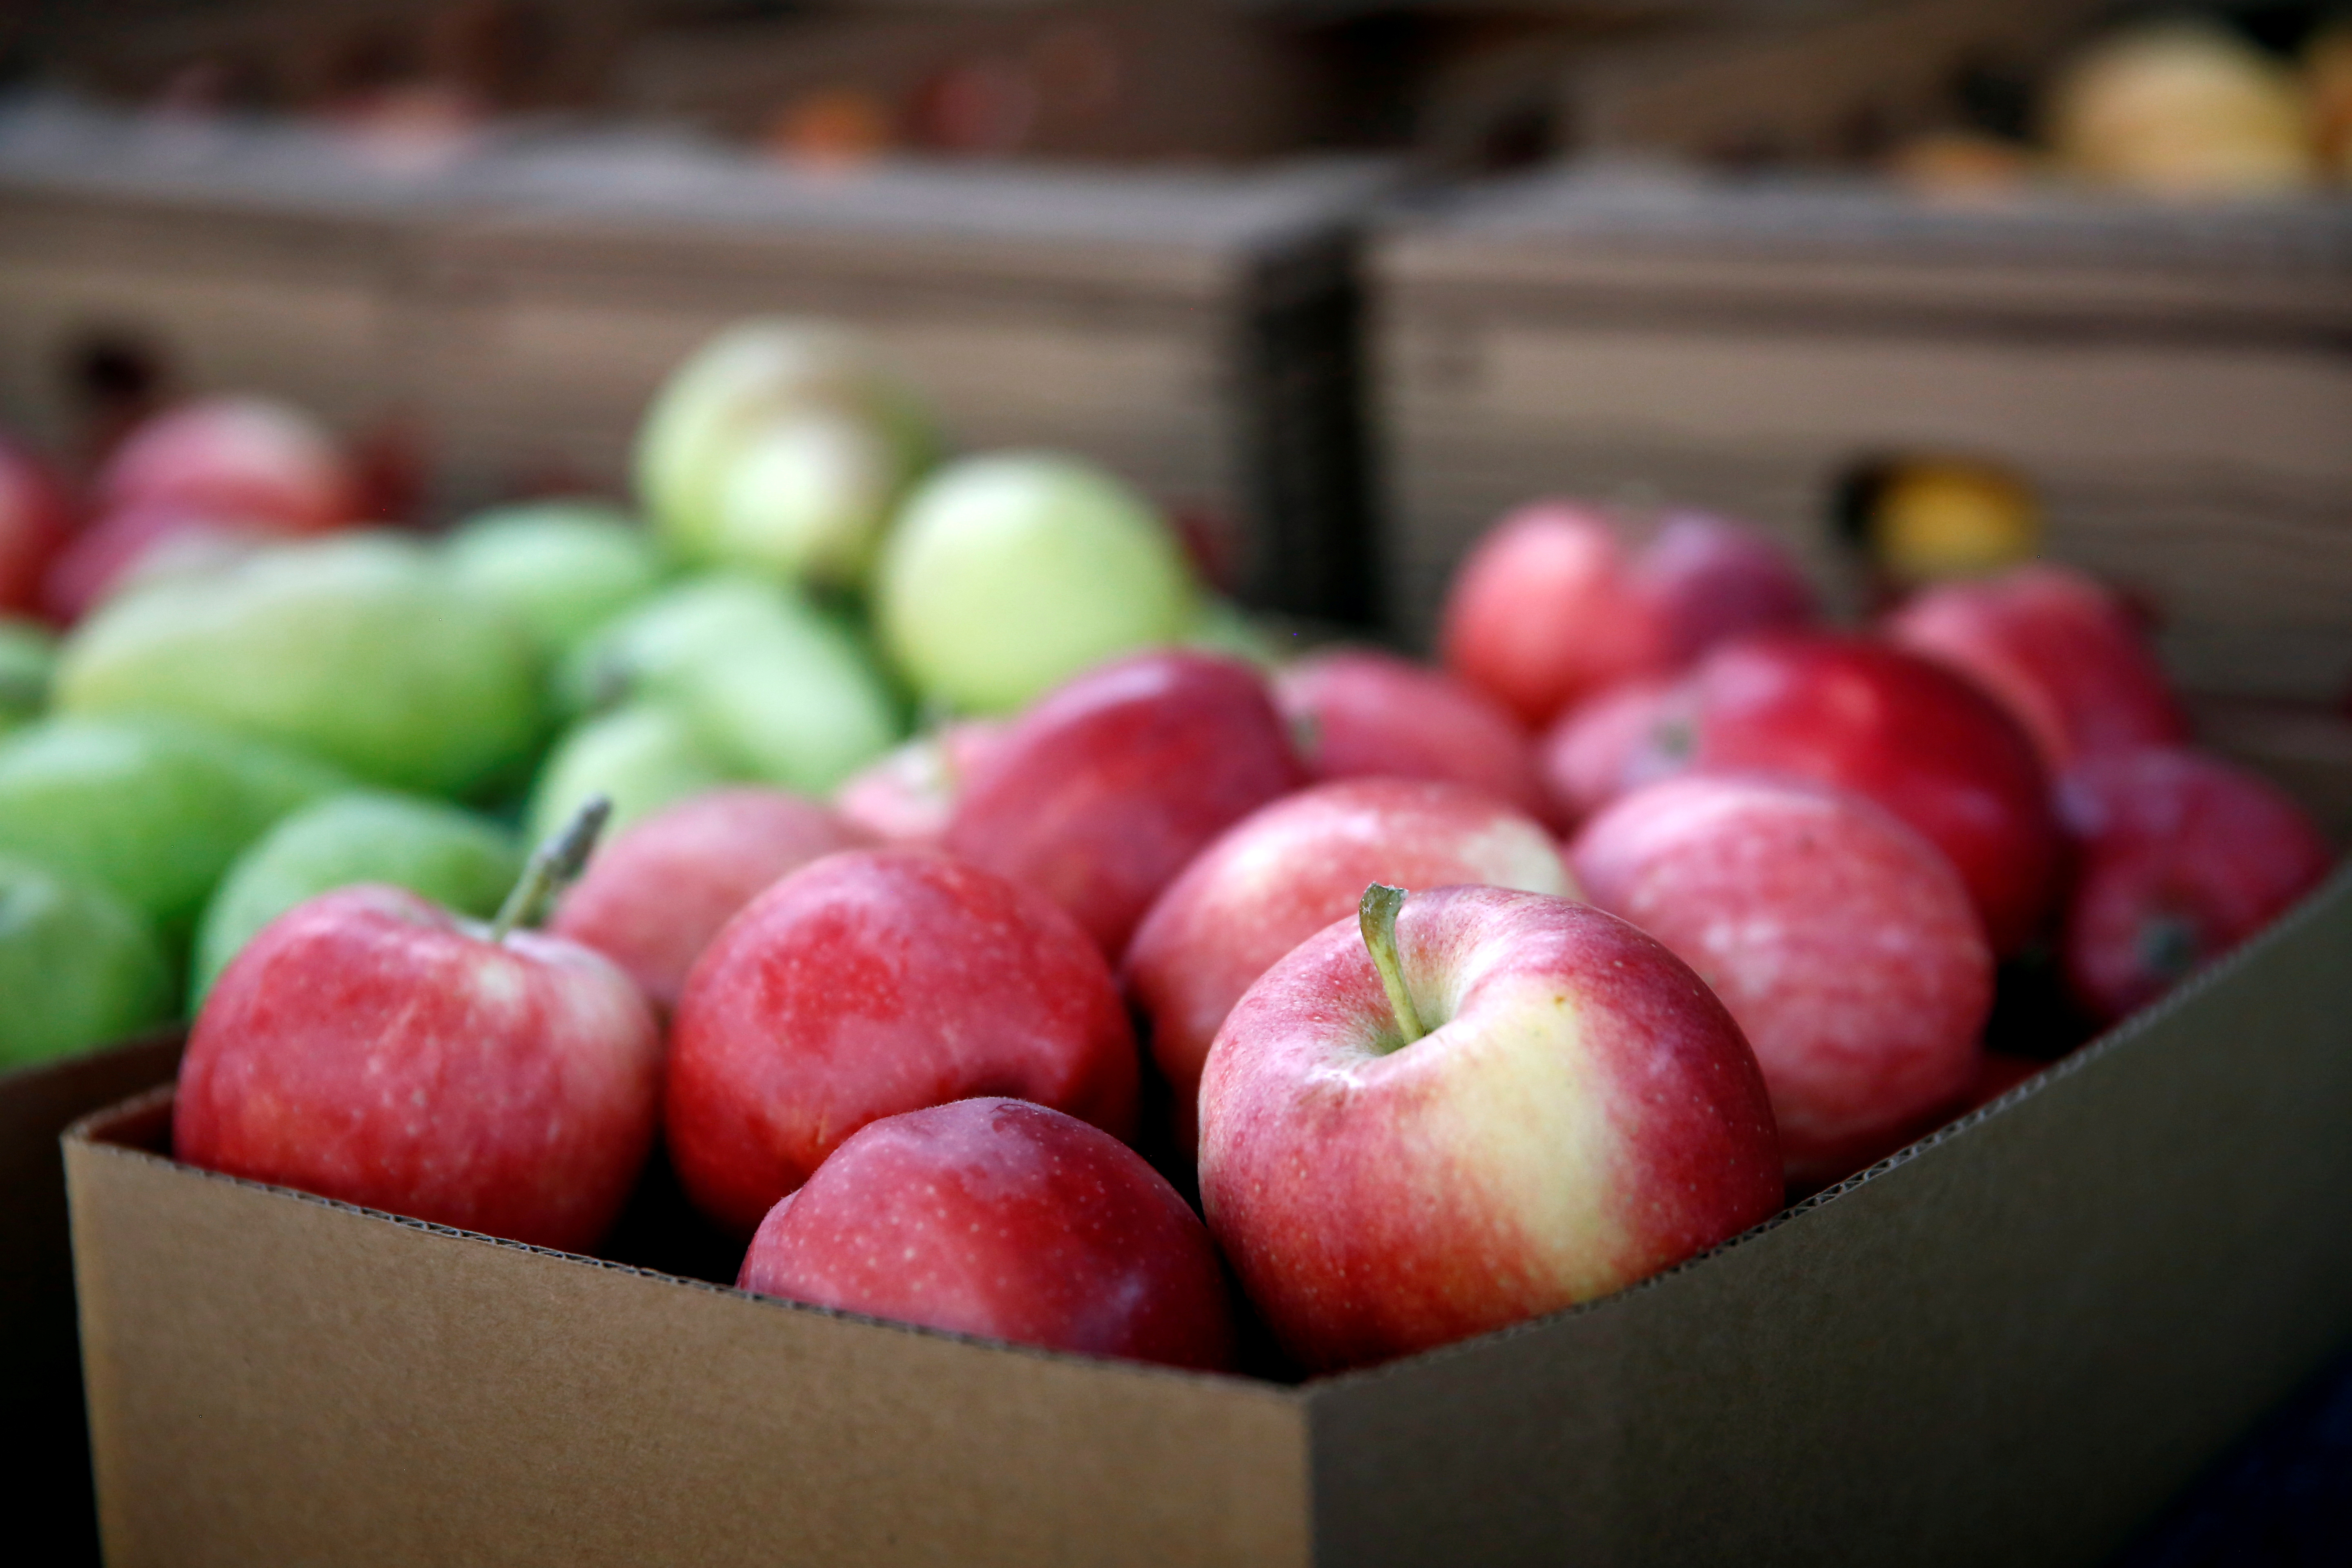 Gala apples are for sale at the B&B Fruit Stand in East Wenatchee, Washington, U.S., September 2, 2018. REUTERS/Lindsey Wasson/File Photo